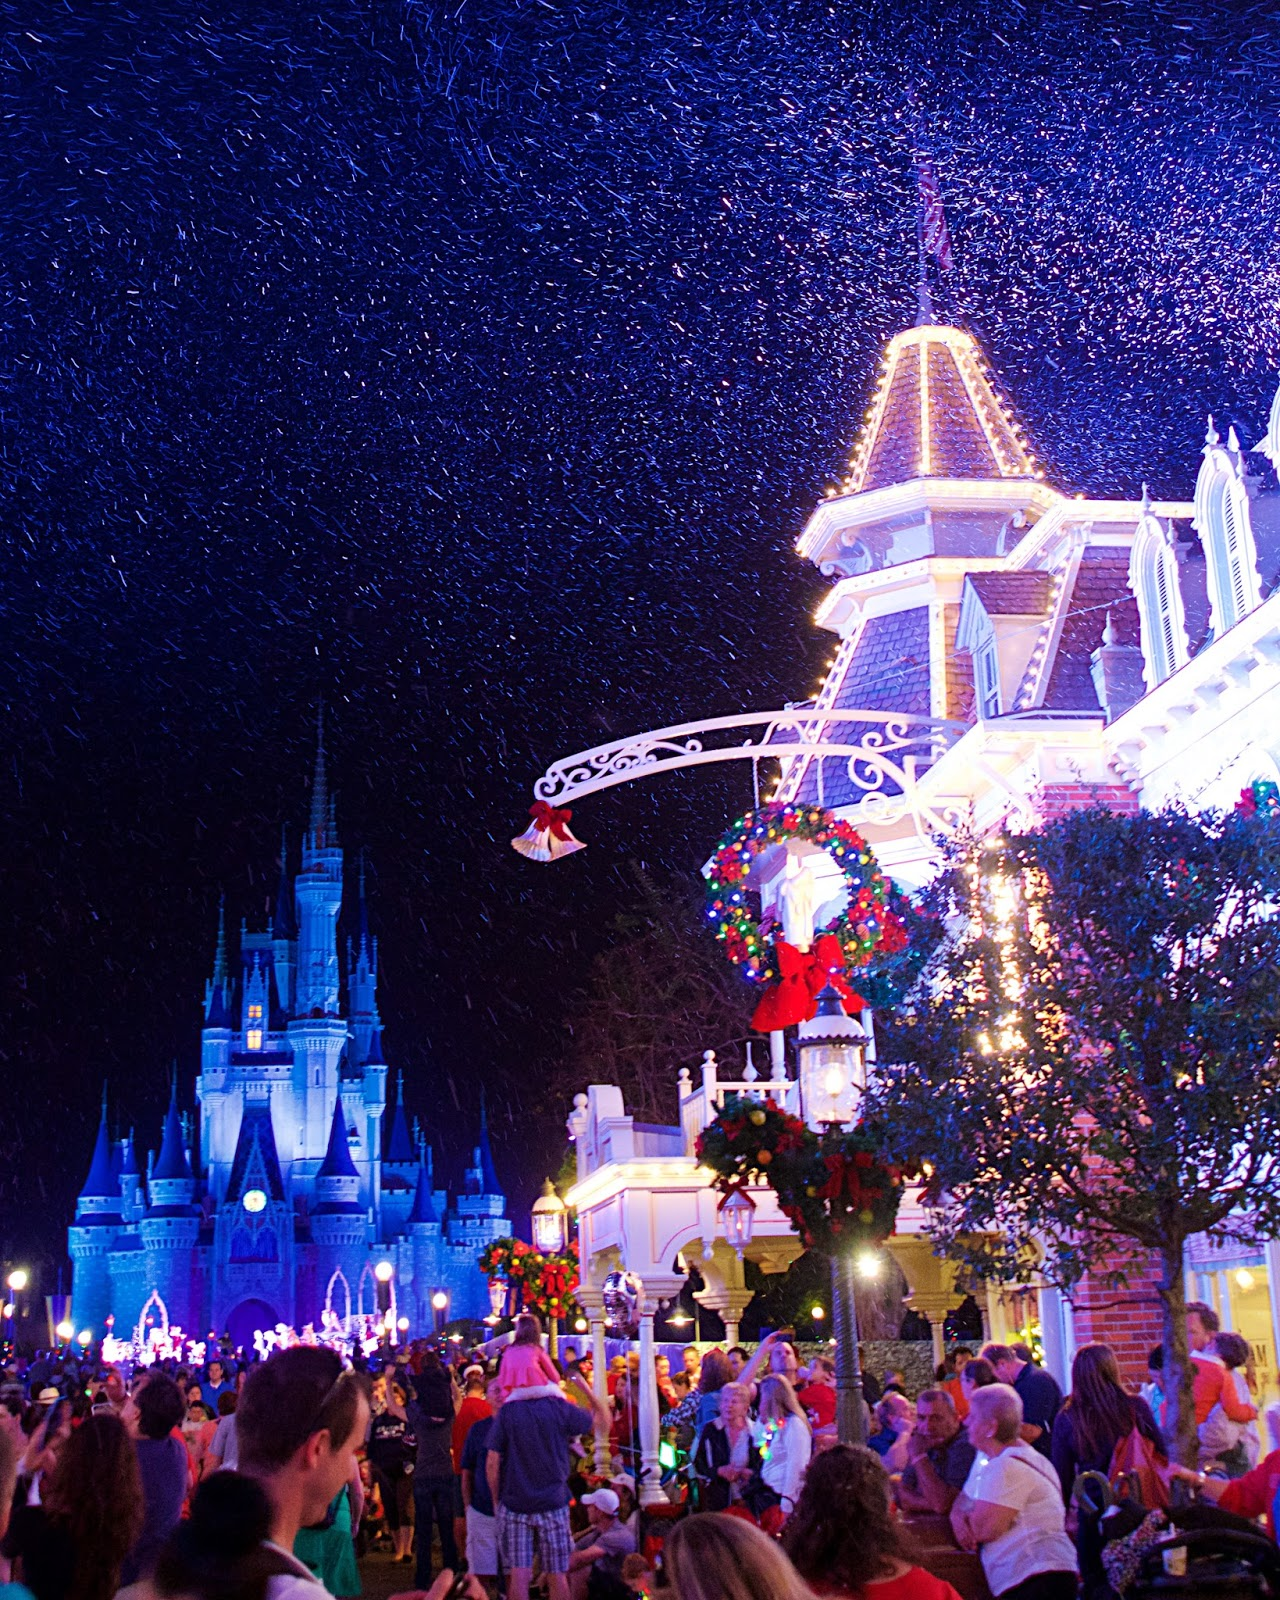 Disney S Very Merry Christmas Party Tickets: Where To Eat & Mickey's Very Merry